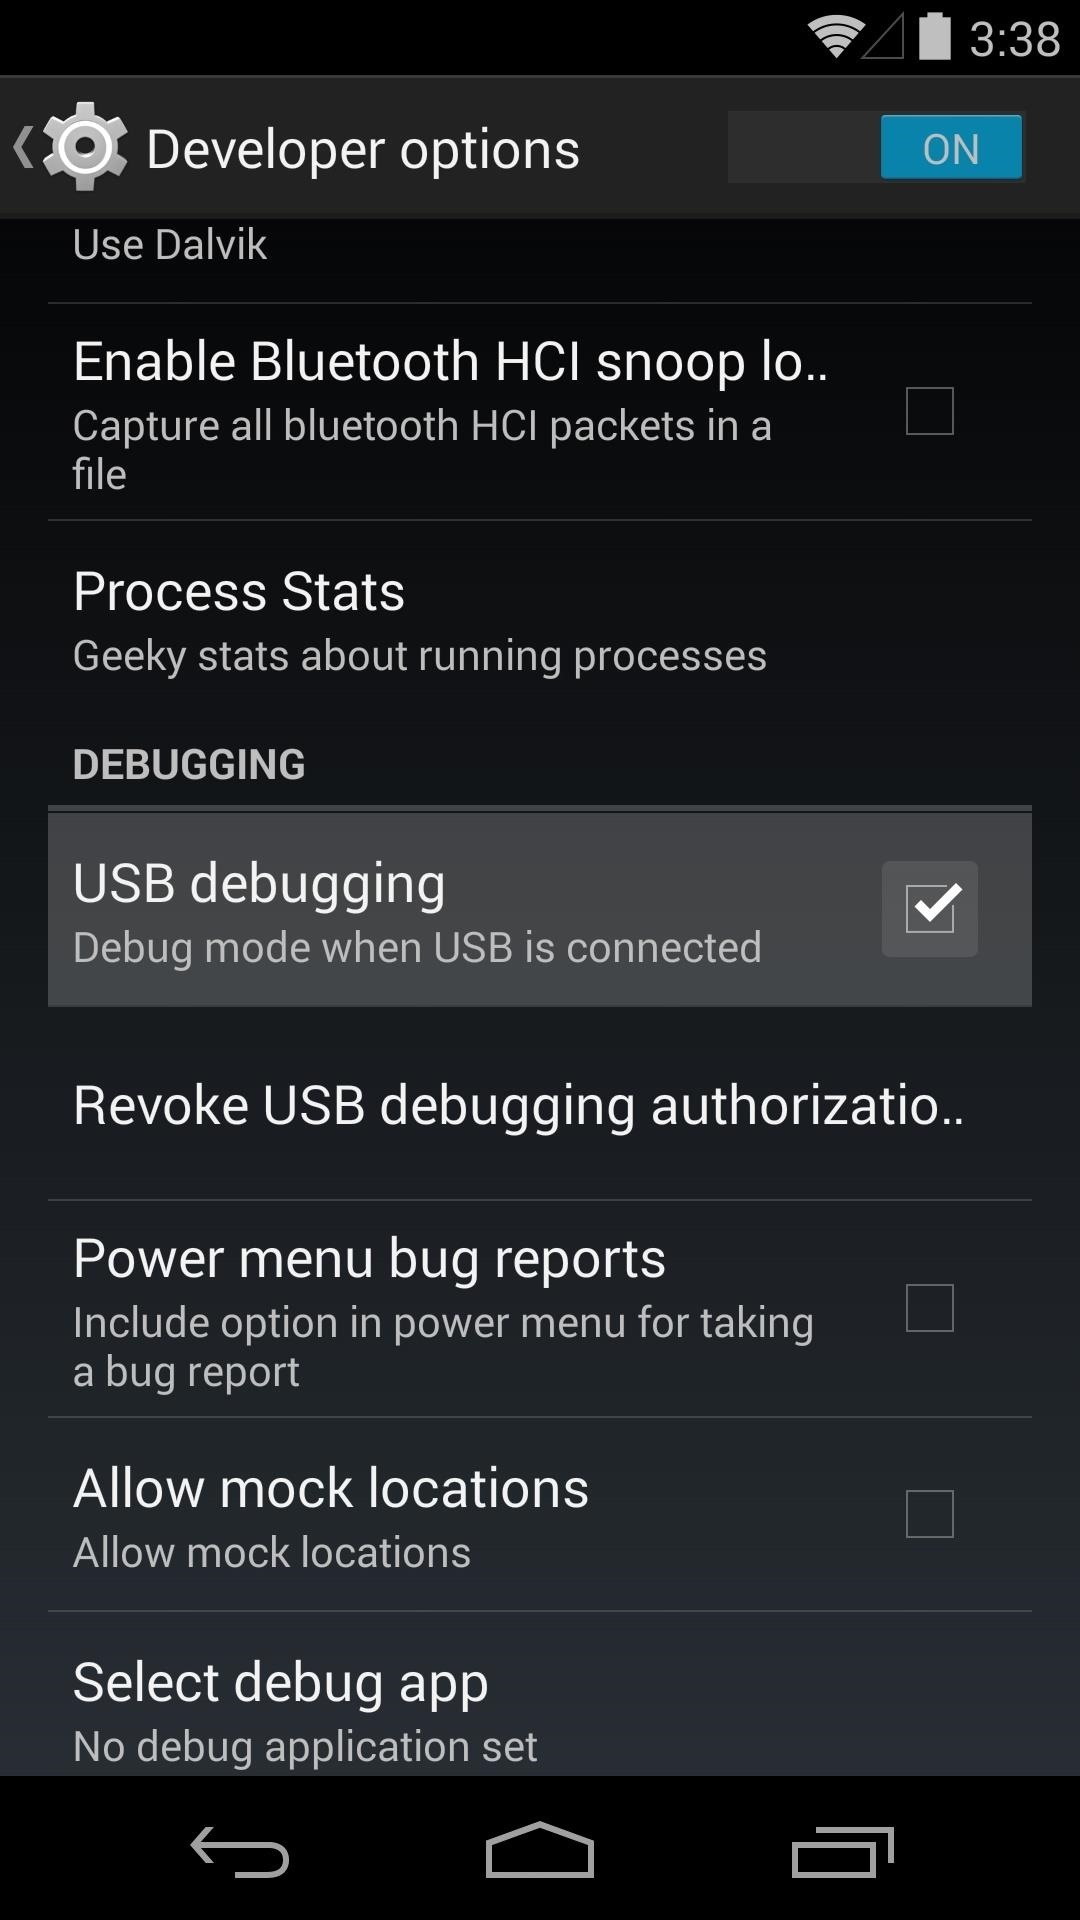 How to Unroot & Relock Your Modded Nexus 5 Back to Factory Condition